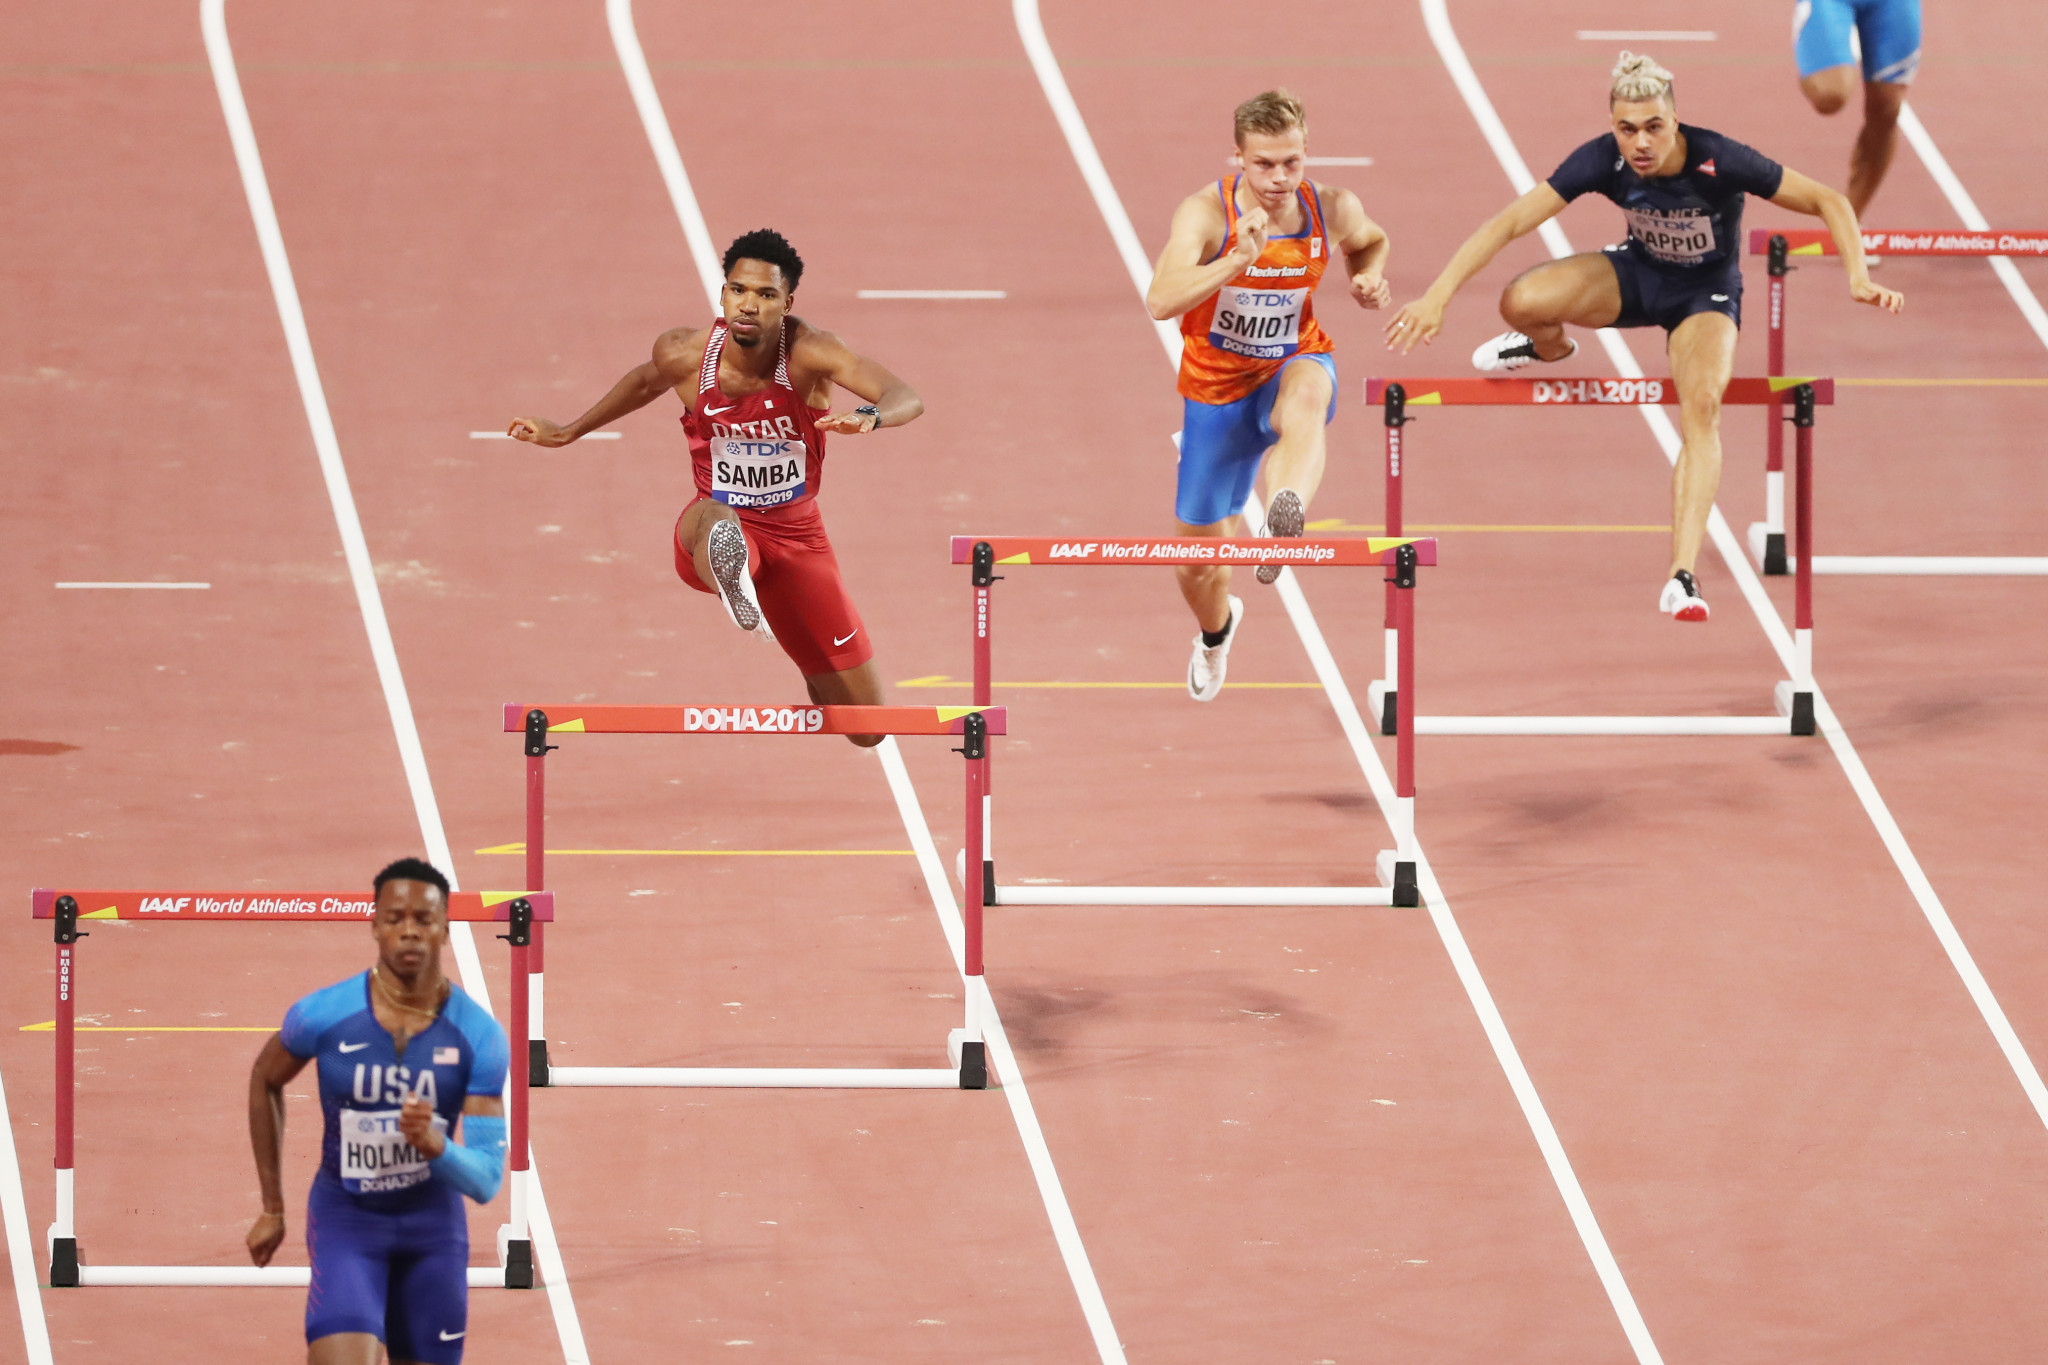 Qatar's Abderrahman Samba was in good form in the opening round of the 400m hurdles on his return to the event following an injury lay-off as he clocked the fastest time ©Getty Images